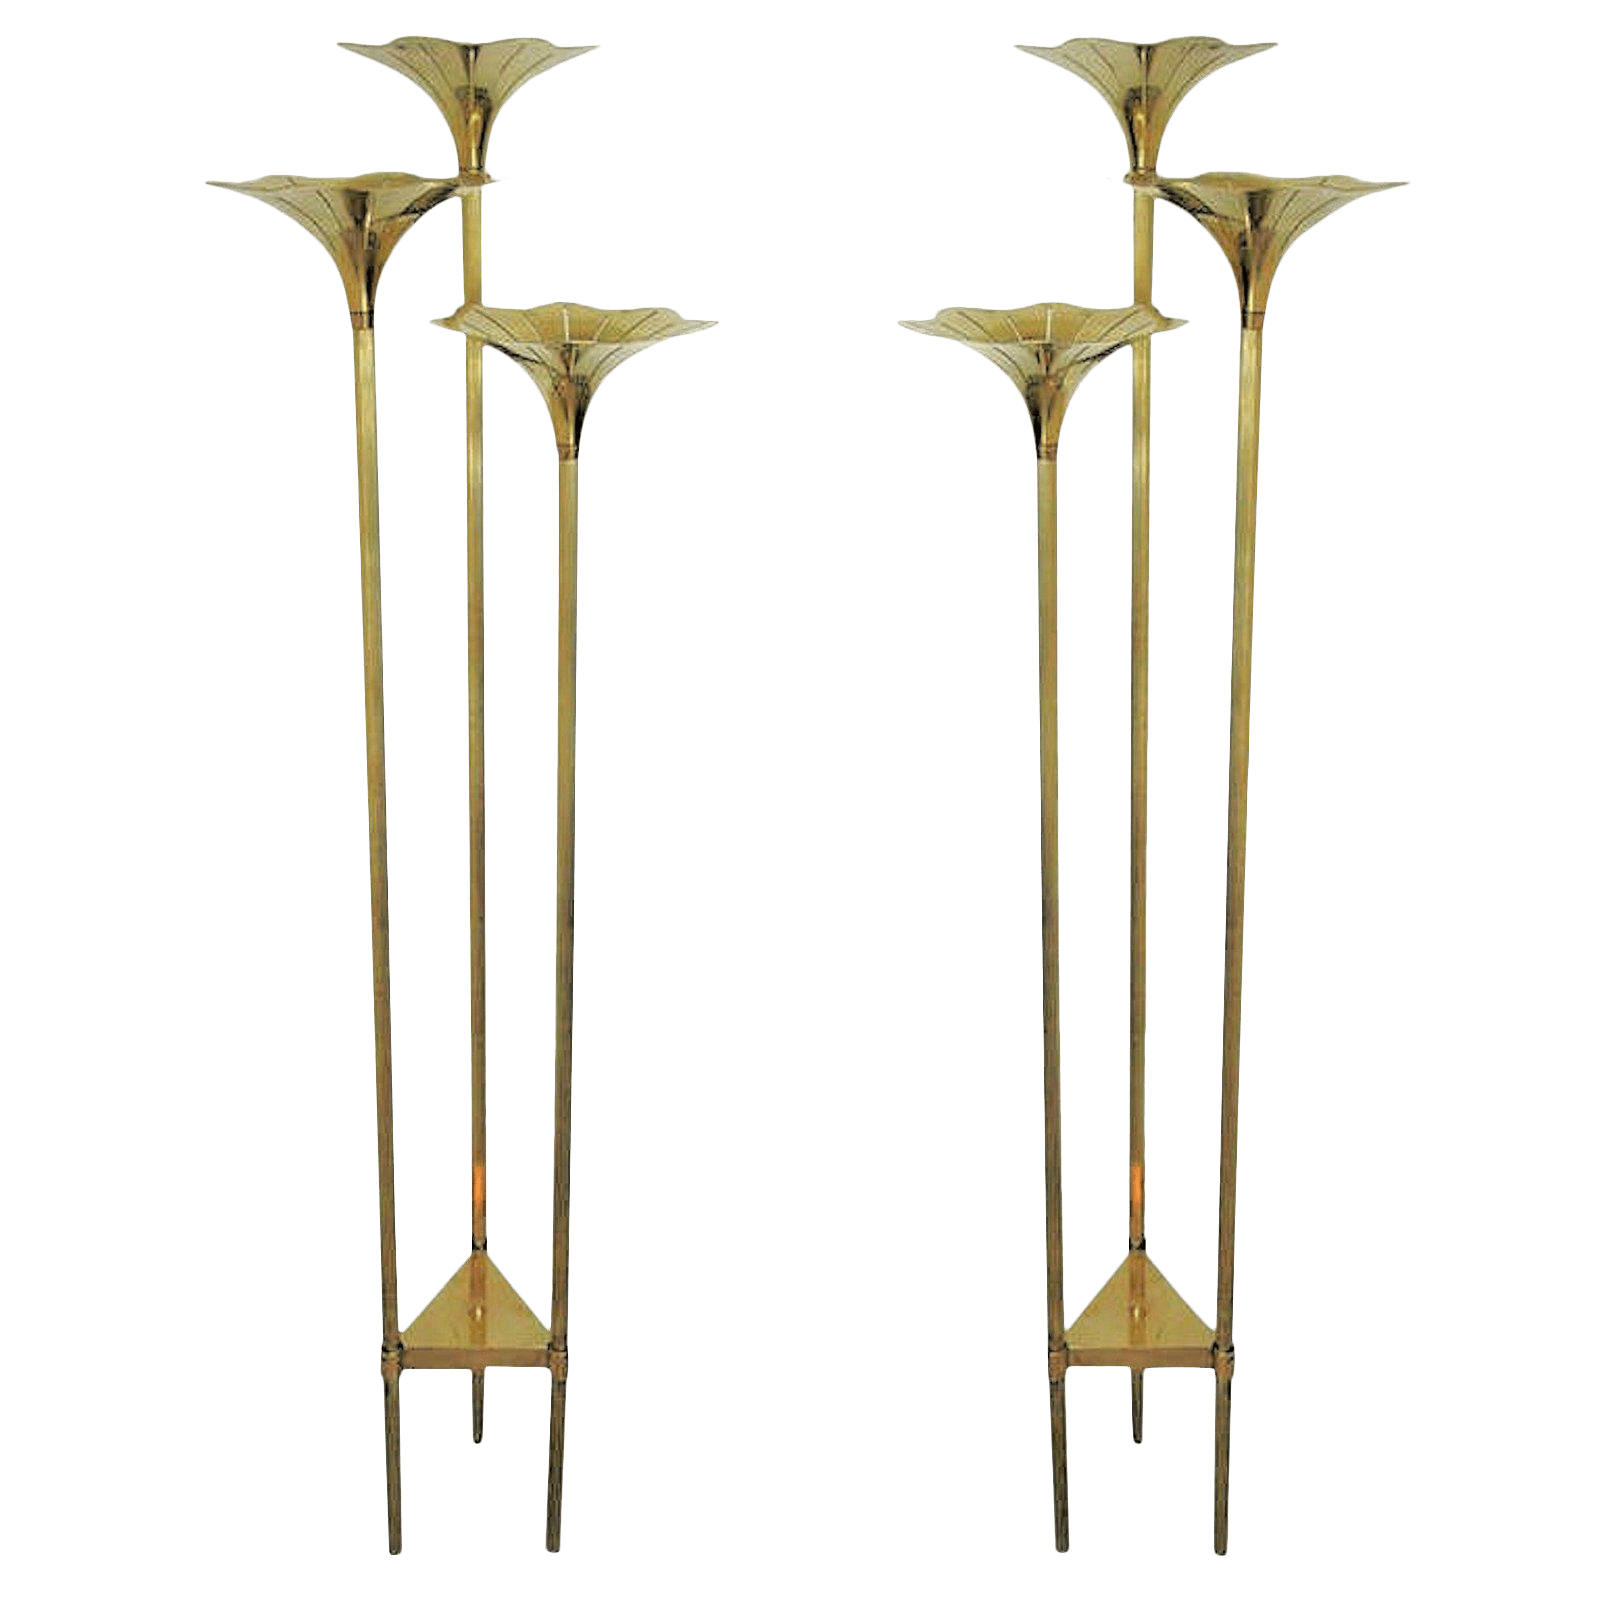 Pair Of Mid Century Brass Floor Lamps In The Style Of Gabriella Crespi